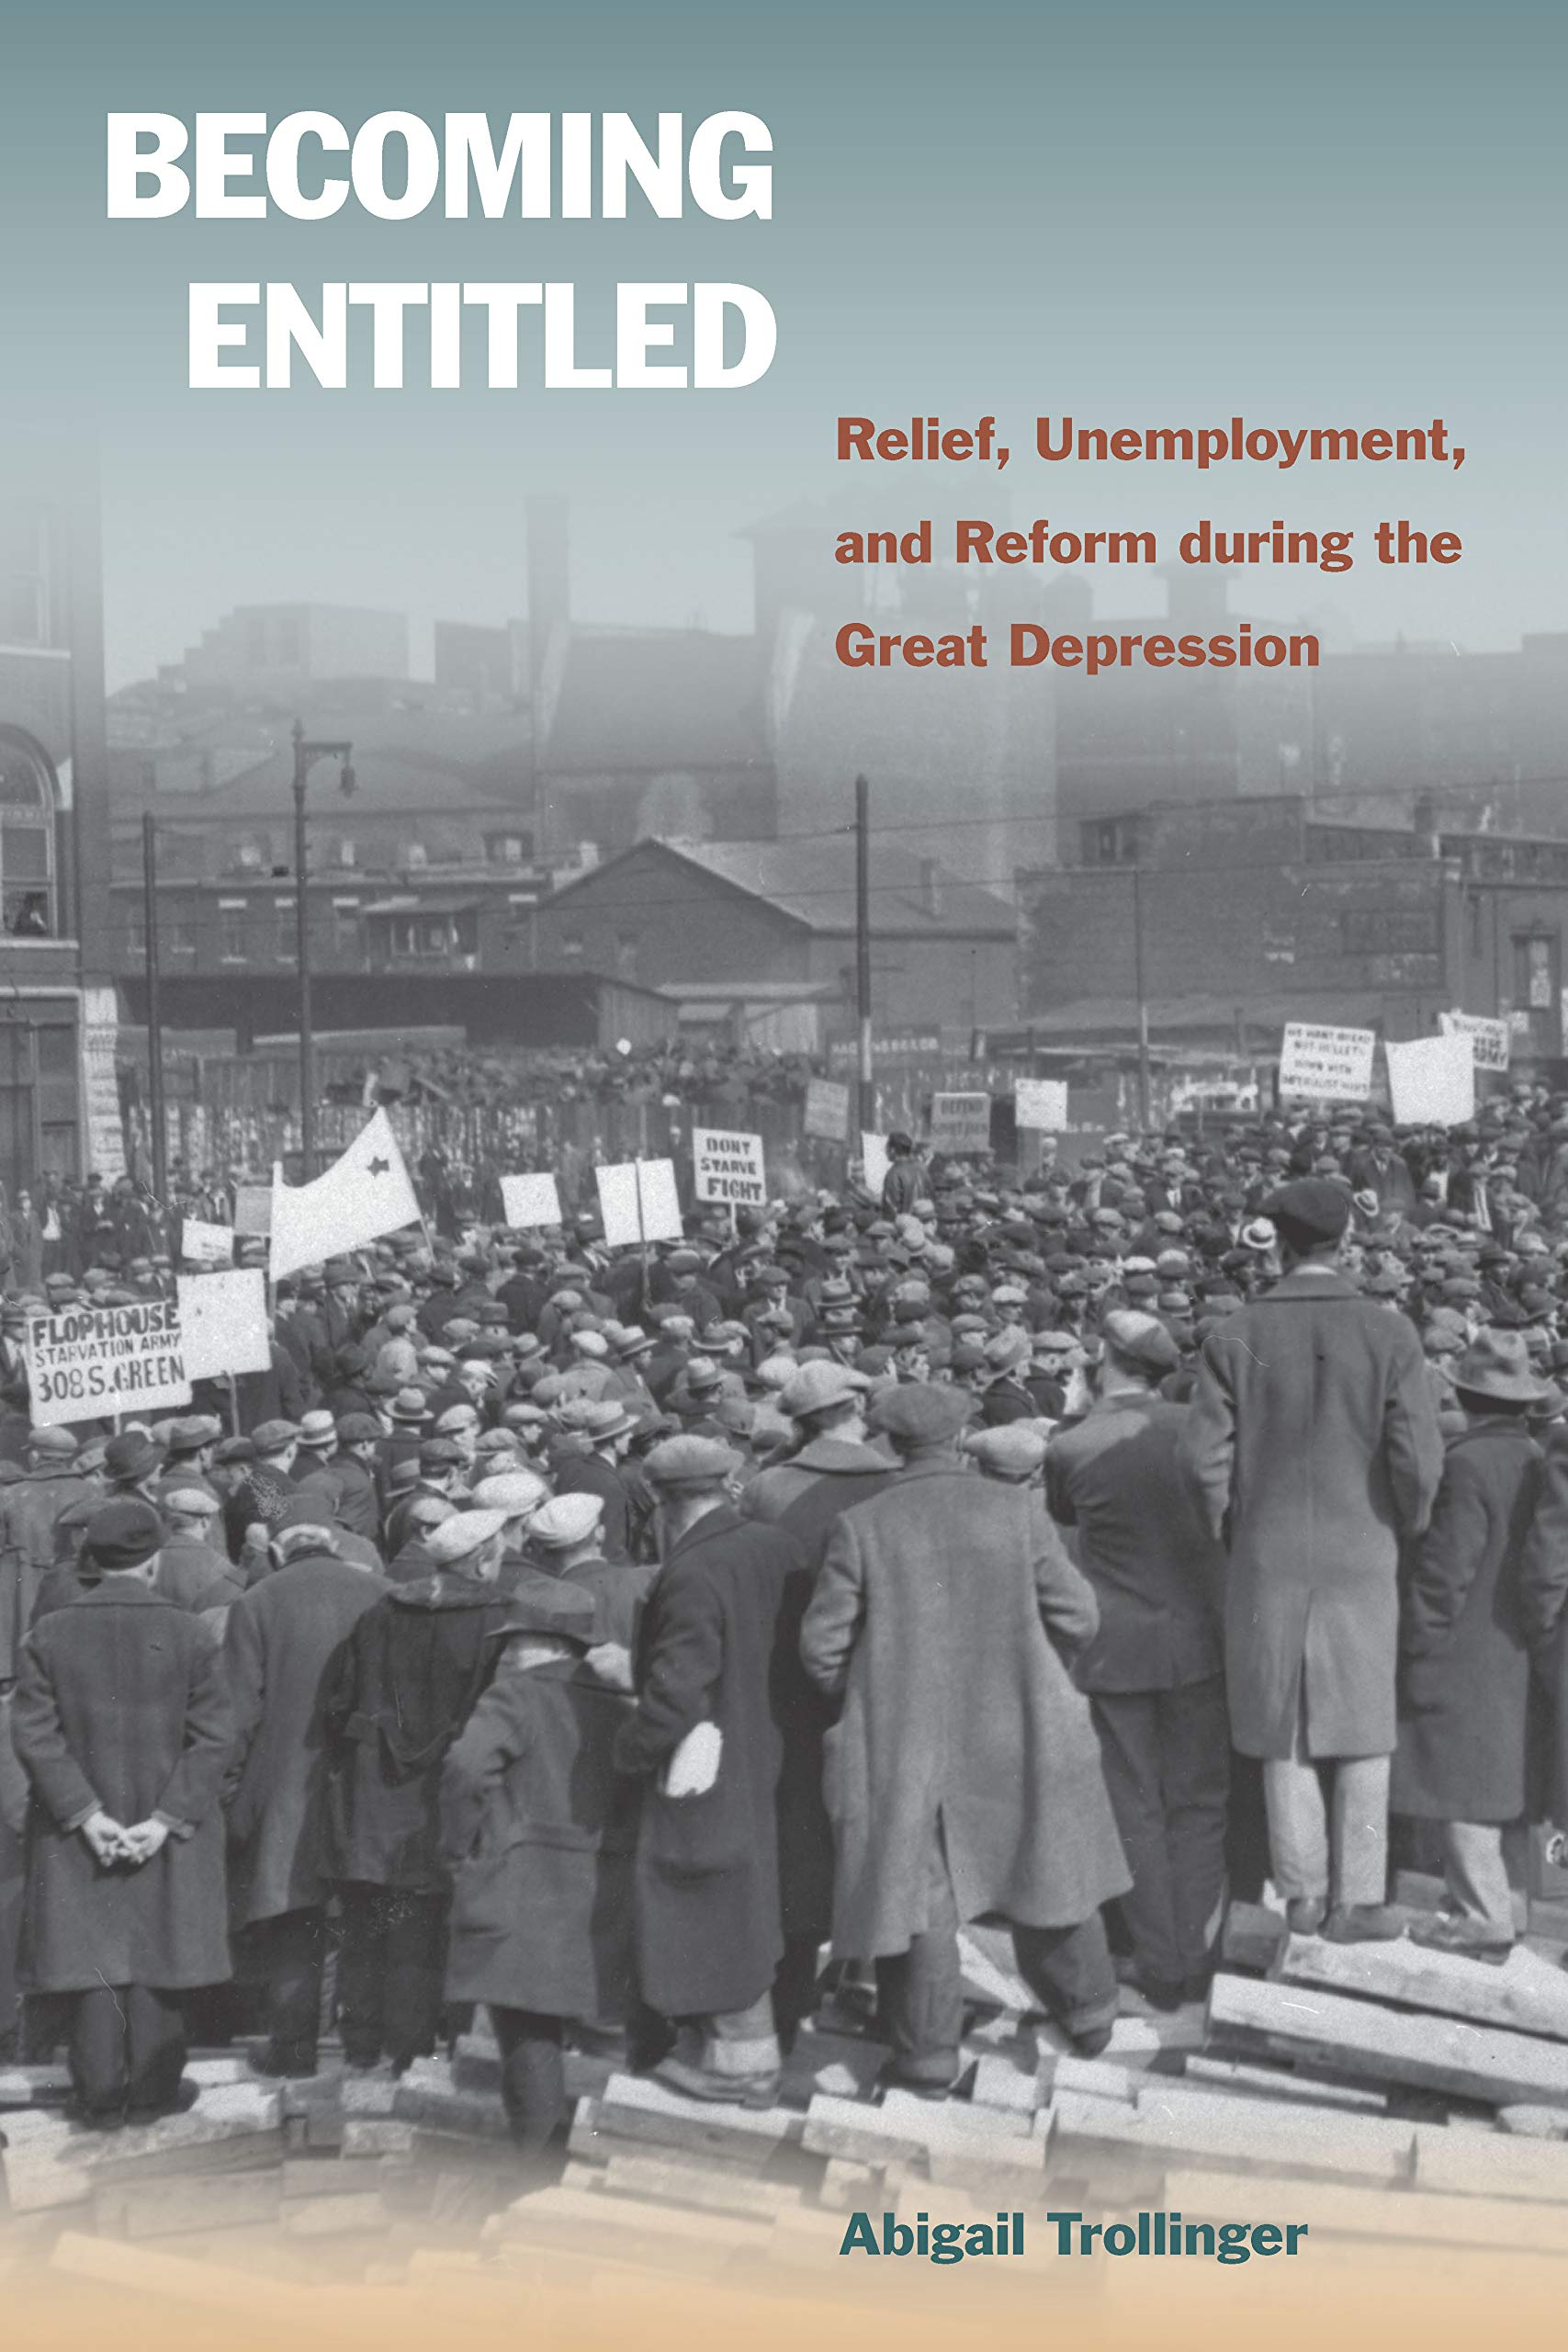 Becoming Entitled: Relief, Unemployment, and Reform during the Great Depression